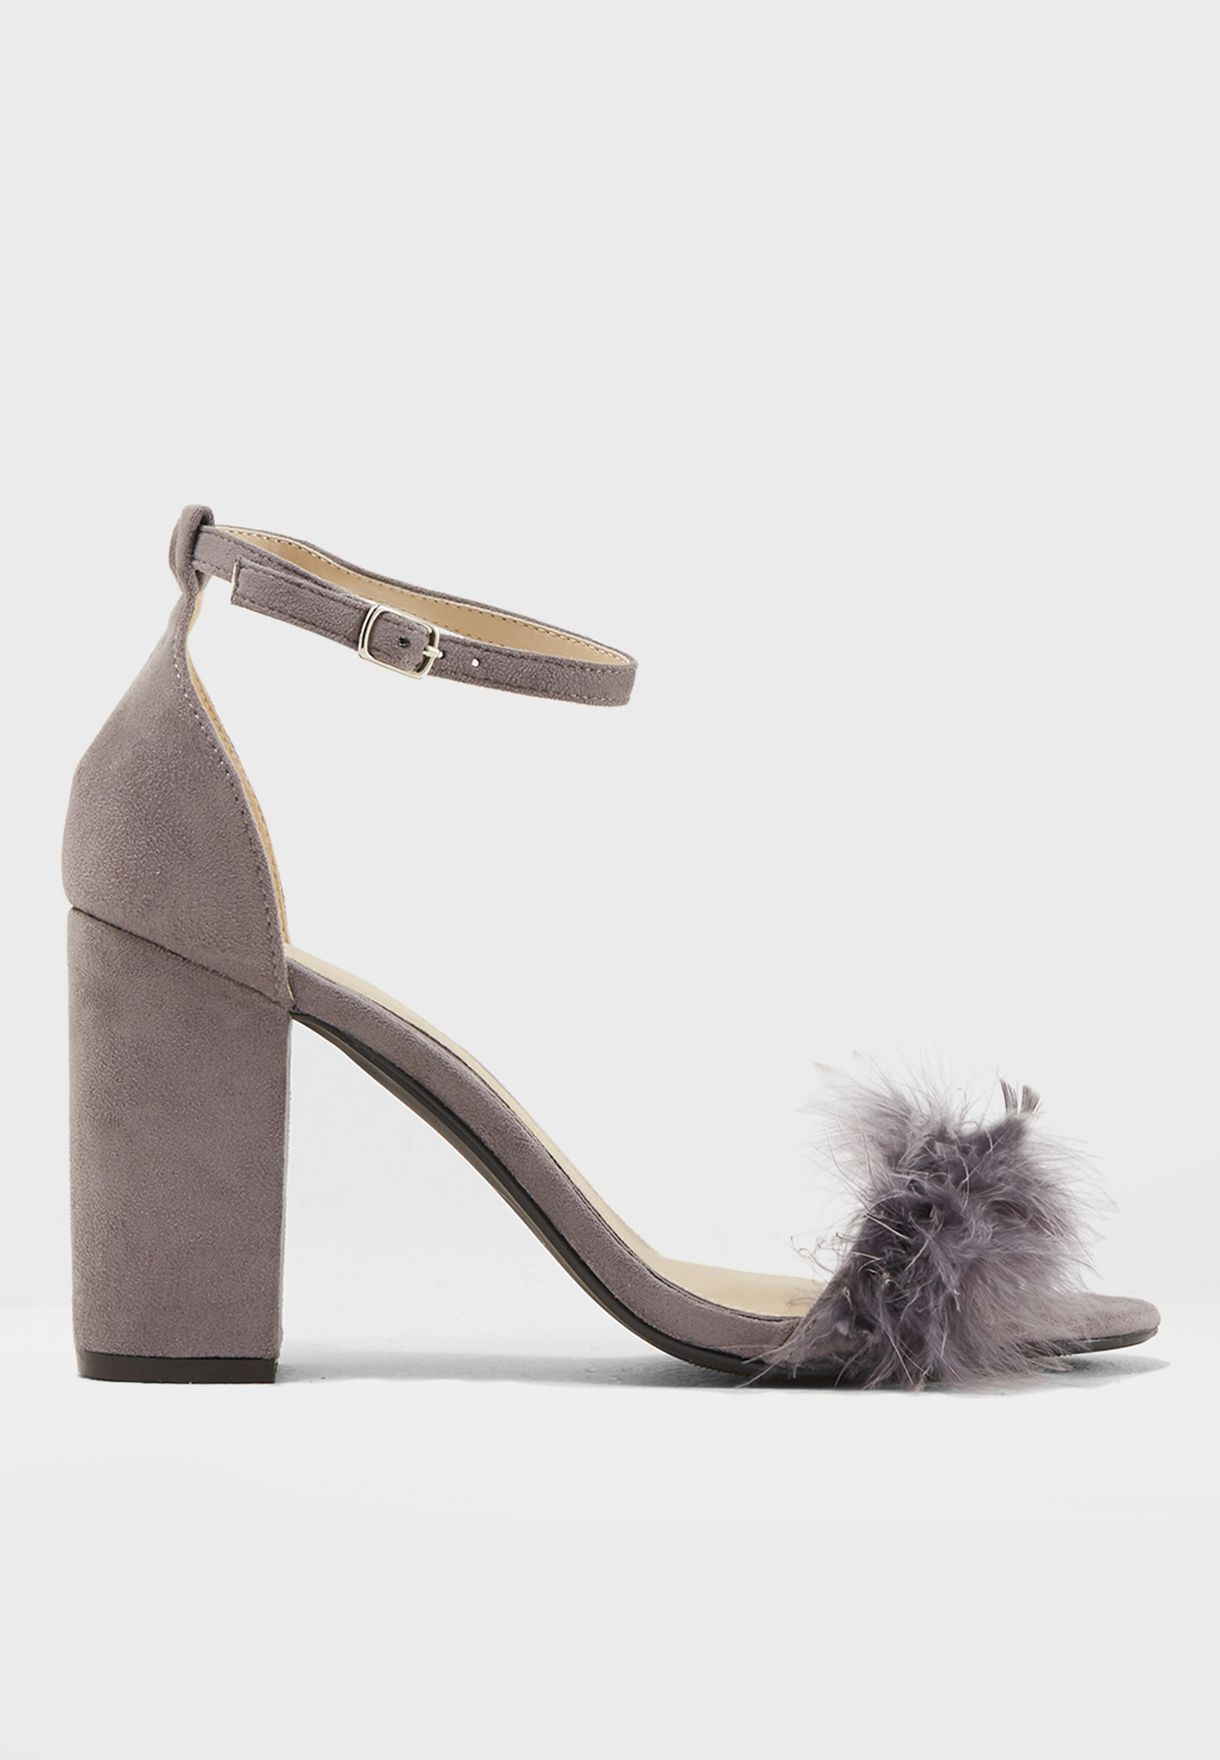 61c92d64ab8 Shop Missguided grey Mid Block Heel Feather Sandal F1608342 for ...